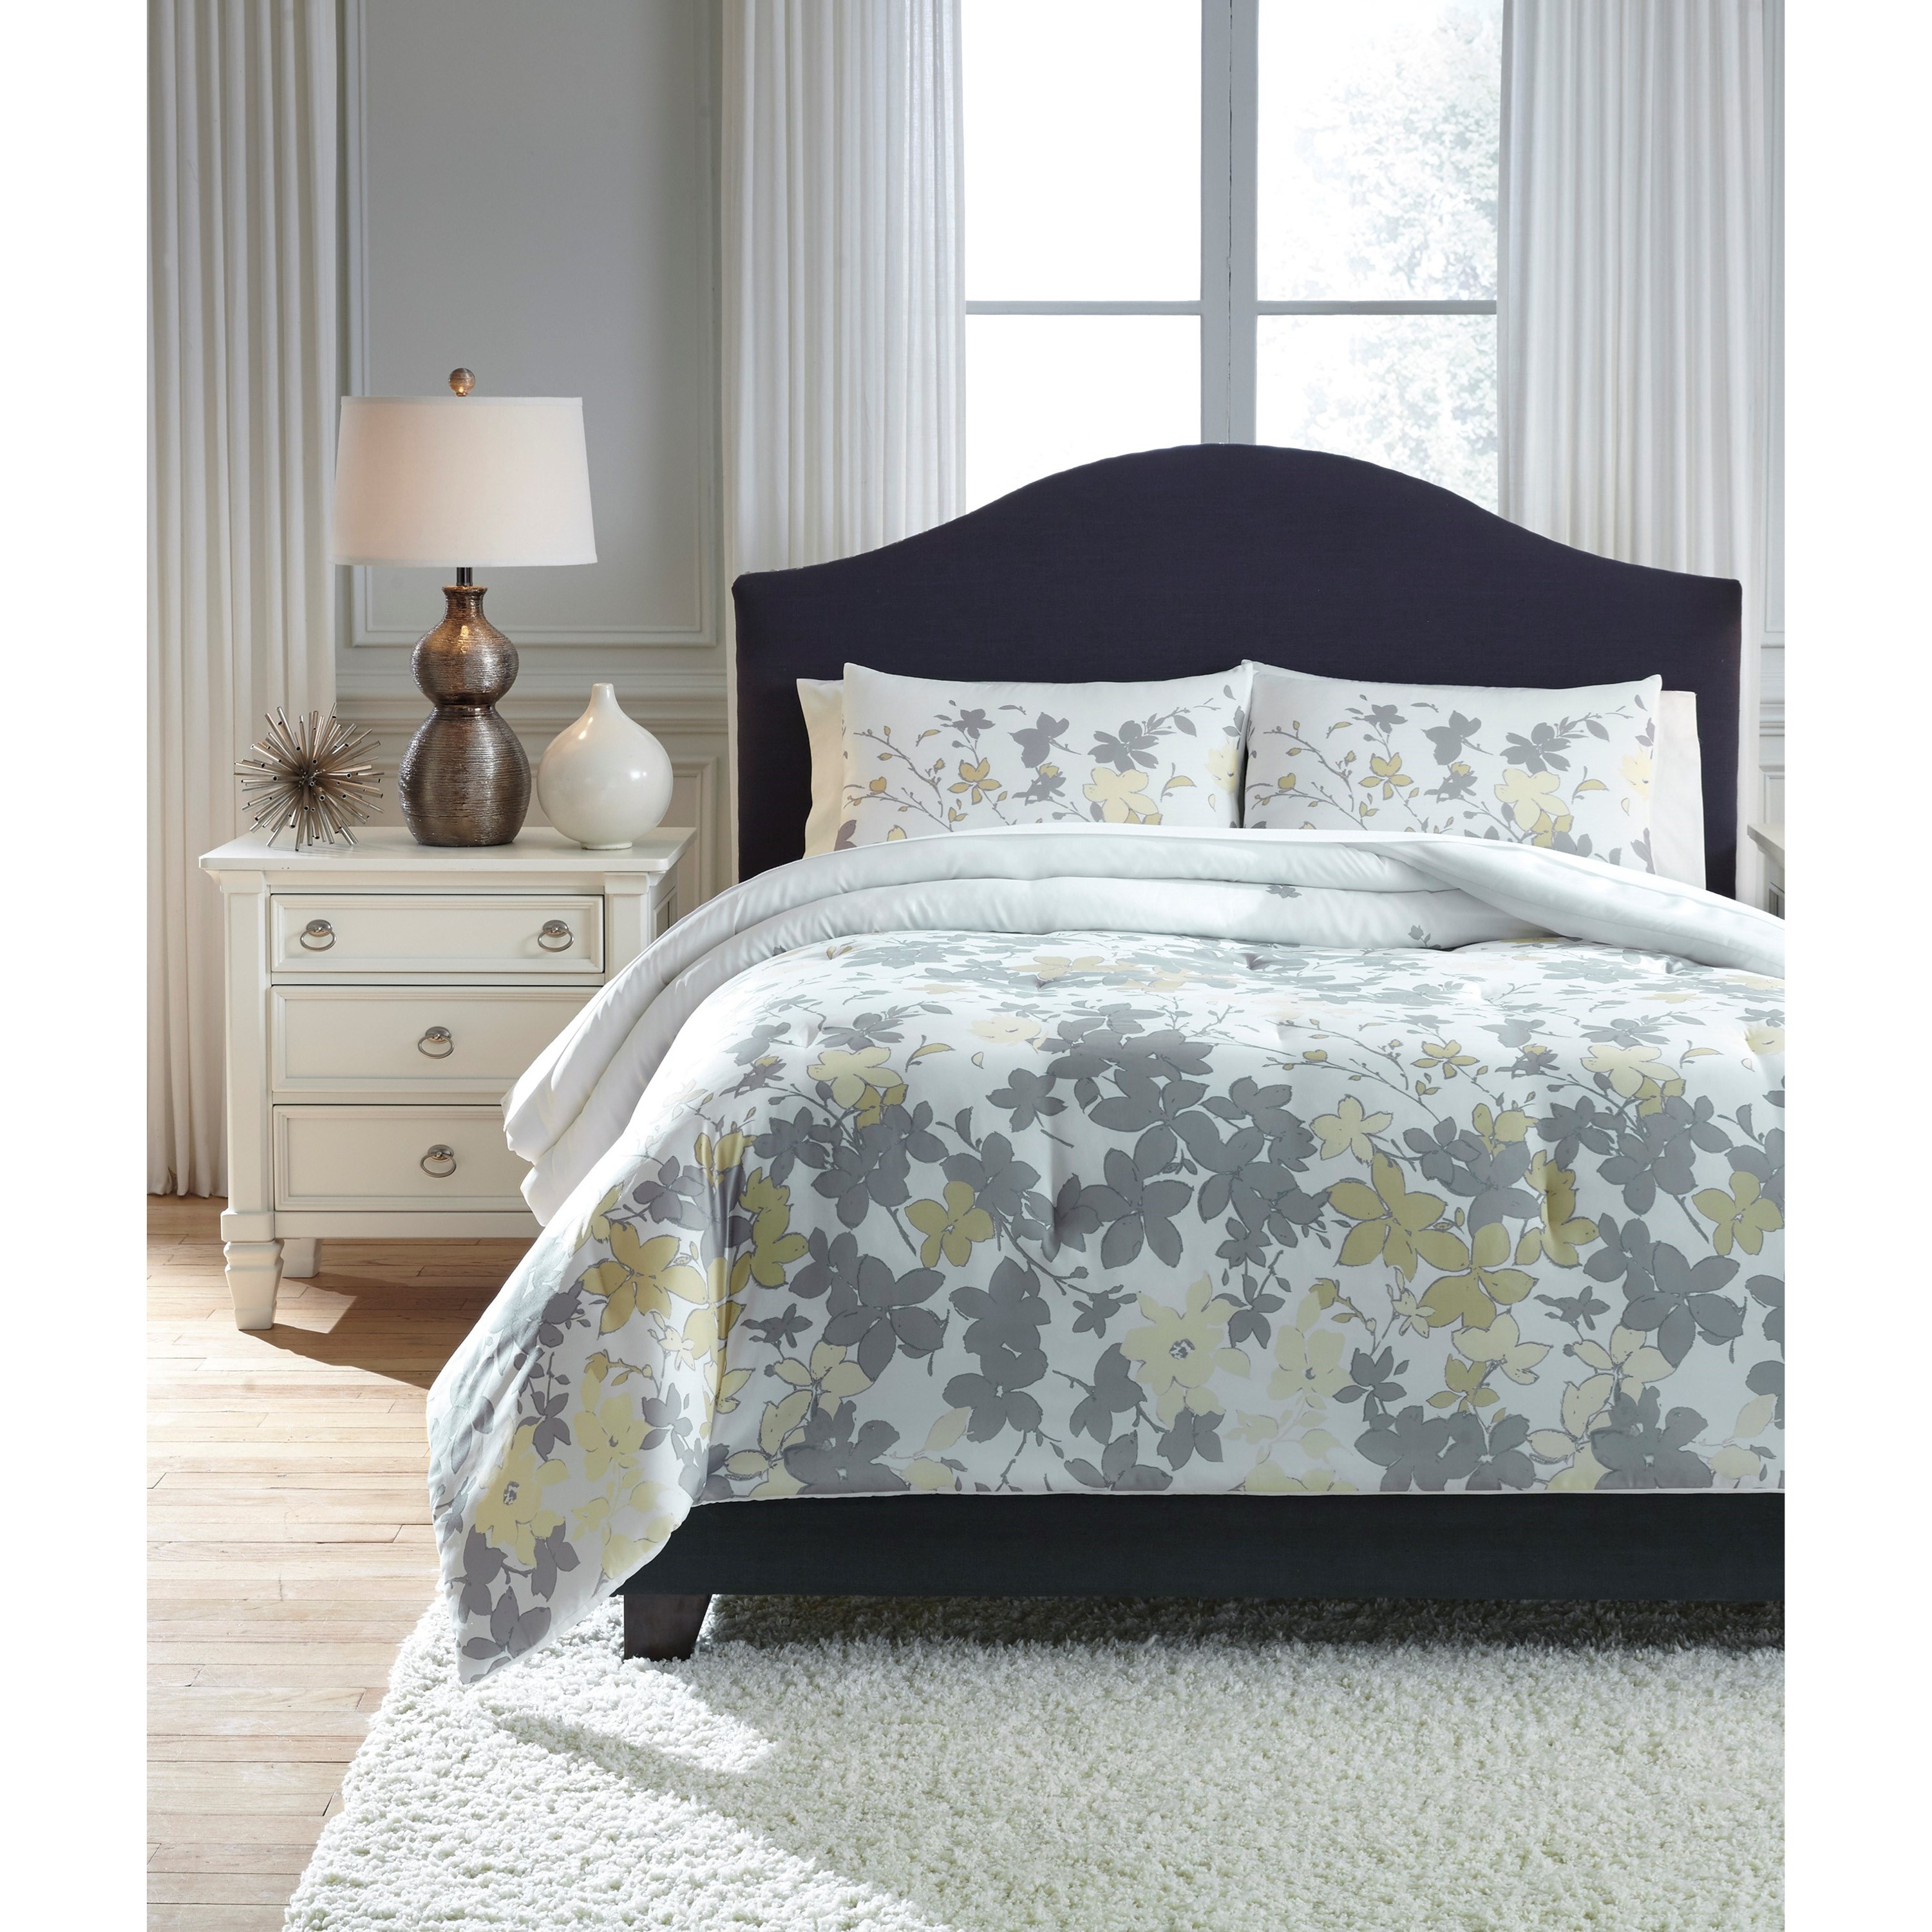 Bedding Sets Queen Maureen Gray/Yellow Comforter Set by Signature Design by Ashley at Sparks HomeStore